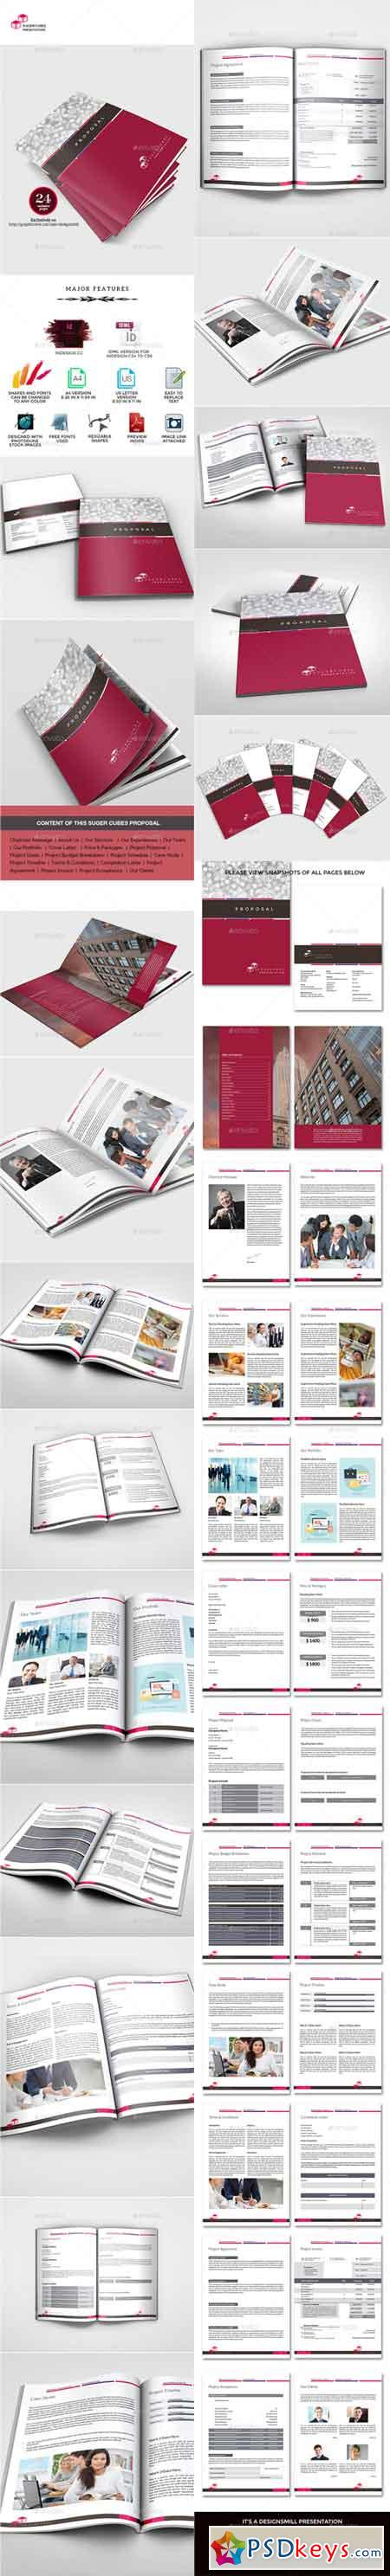 Sugercube InDesign Proposal Template for Business 9807983